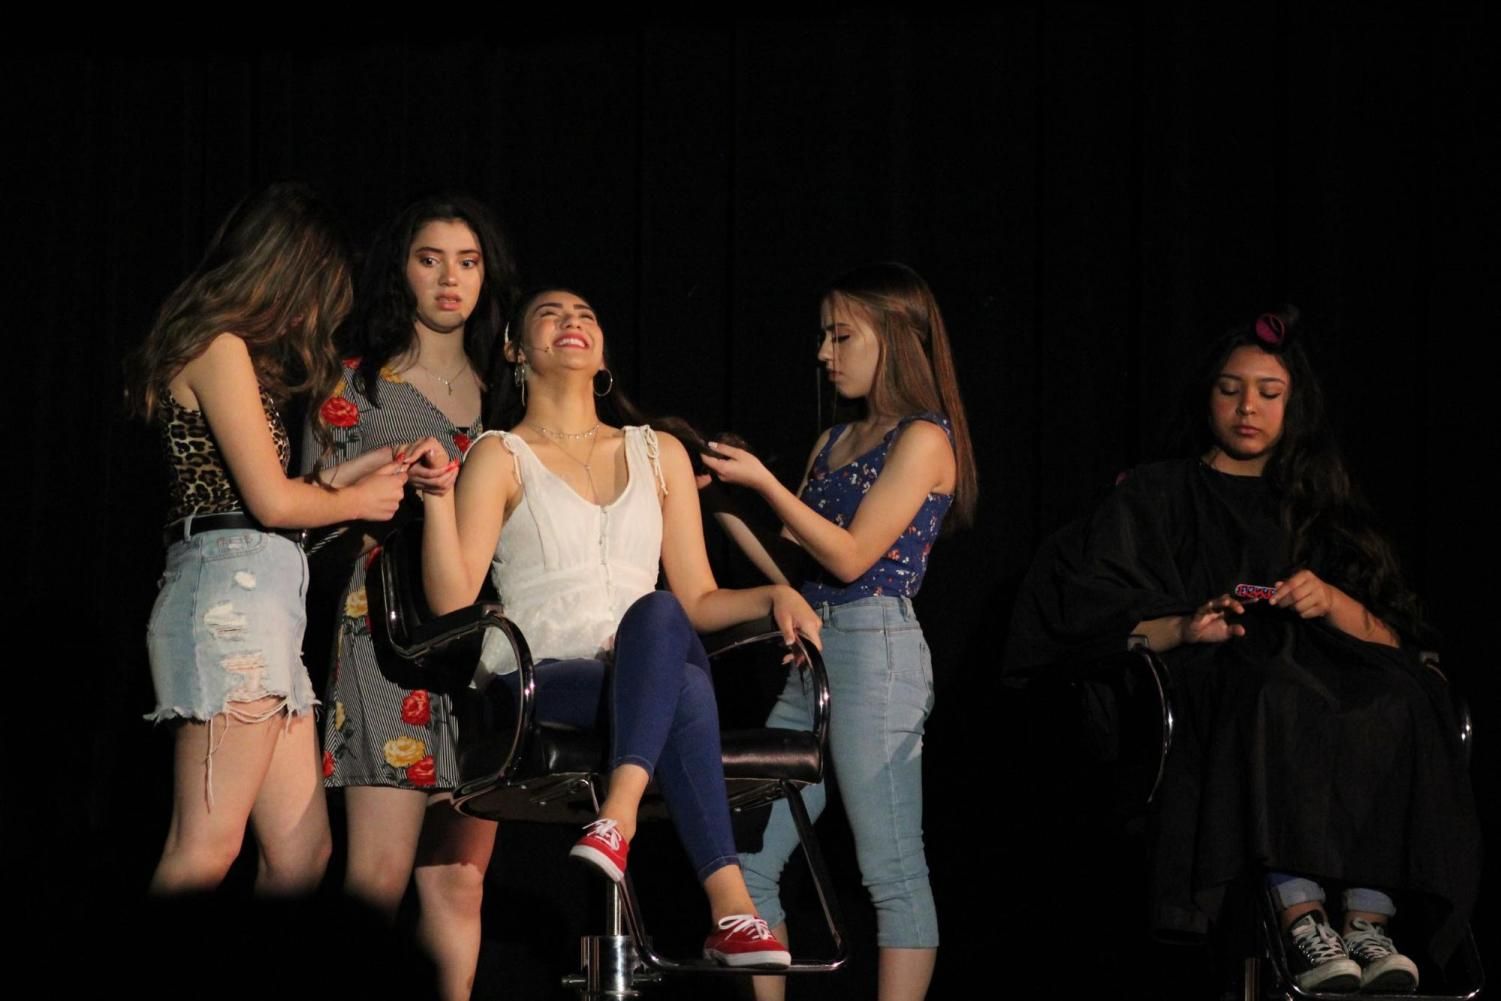 On+March+21-23+in+the+Downey+Theater%2C+Isabella+Diaz%2C+10%2C+played+the+character+Carla+during+the+DHS+Drama+production+of+In+the+Heights.+%E2%80%9CPerforming+in+front+of+everyone+is+so+exciting+and+is+a+really+good+feeling%2C%E2%80%9D+Diaz+stated.+%E2%80%9CTheatre+and+performing+in+general+is+just+really+fun+and+brings+out+a+passion+from+me.%E2%80%9D